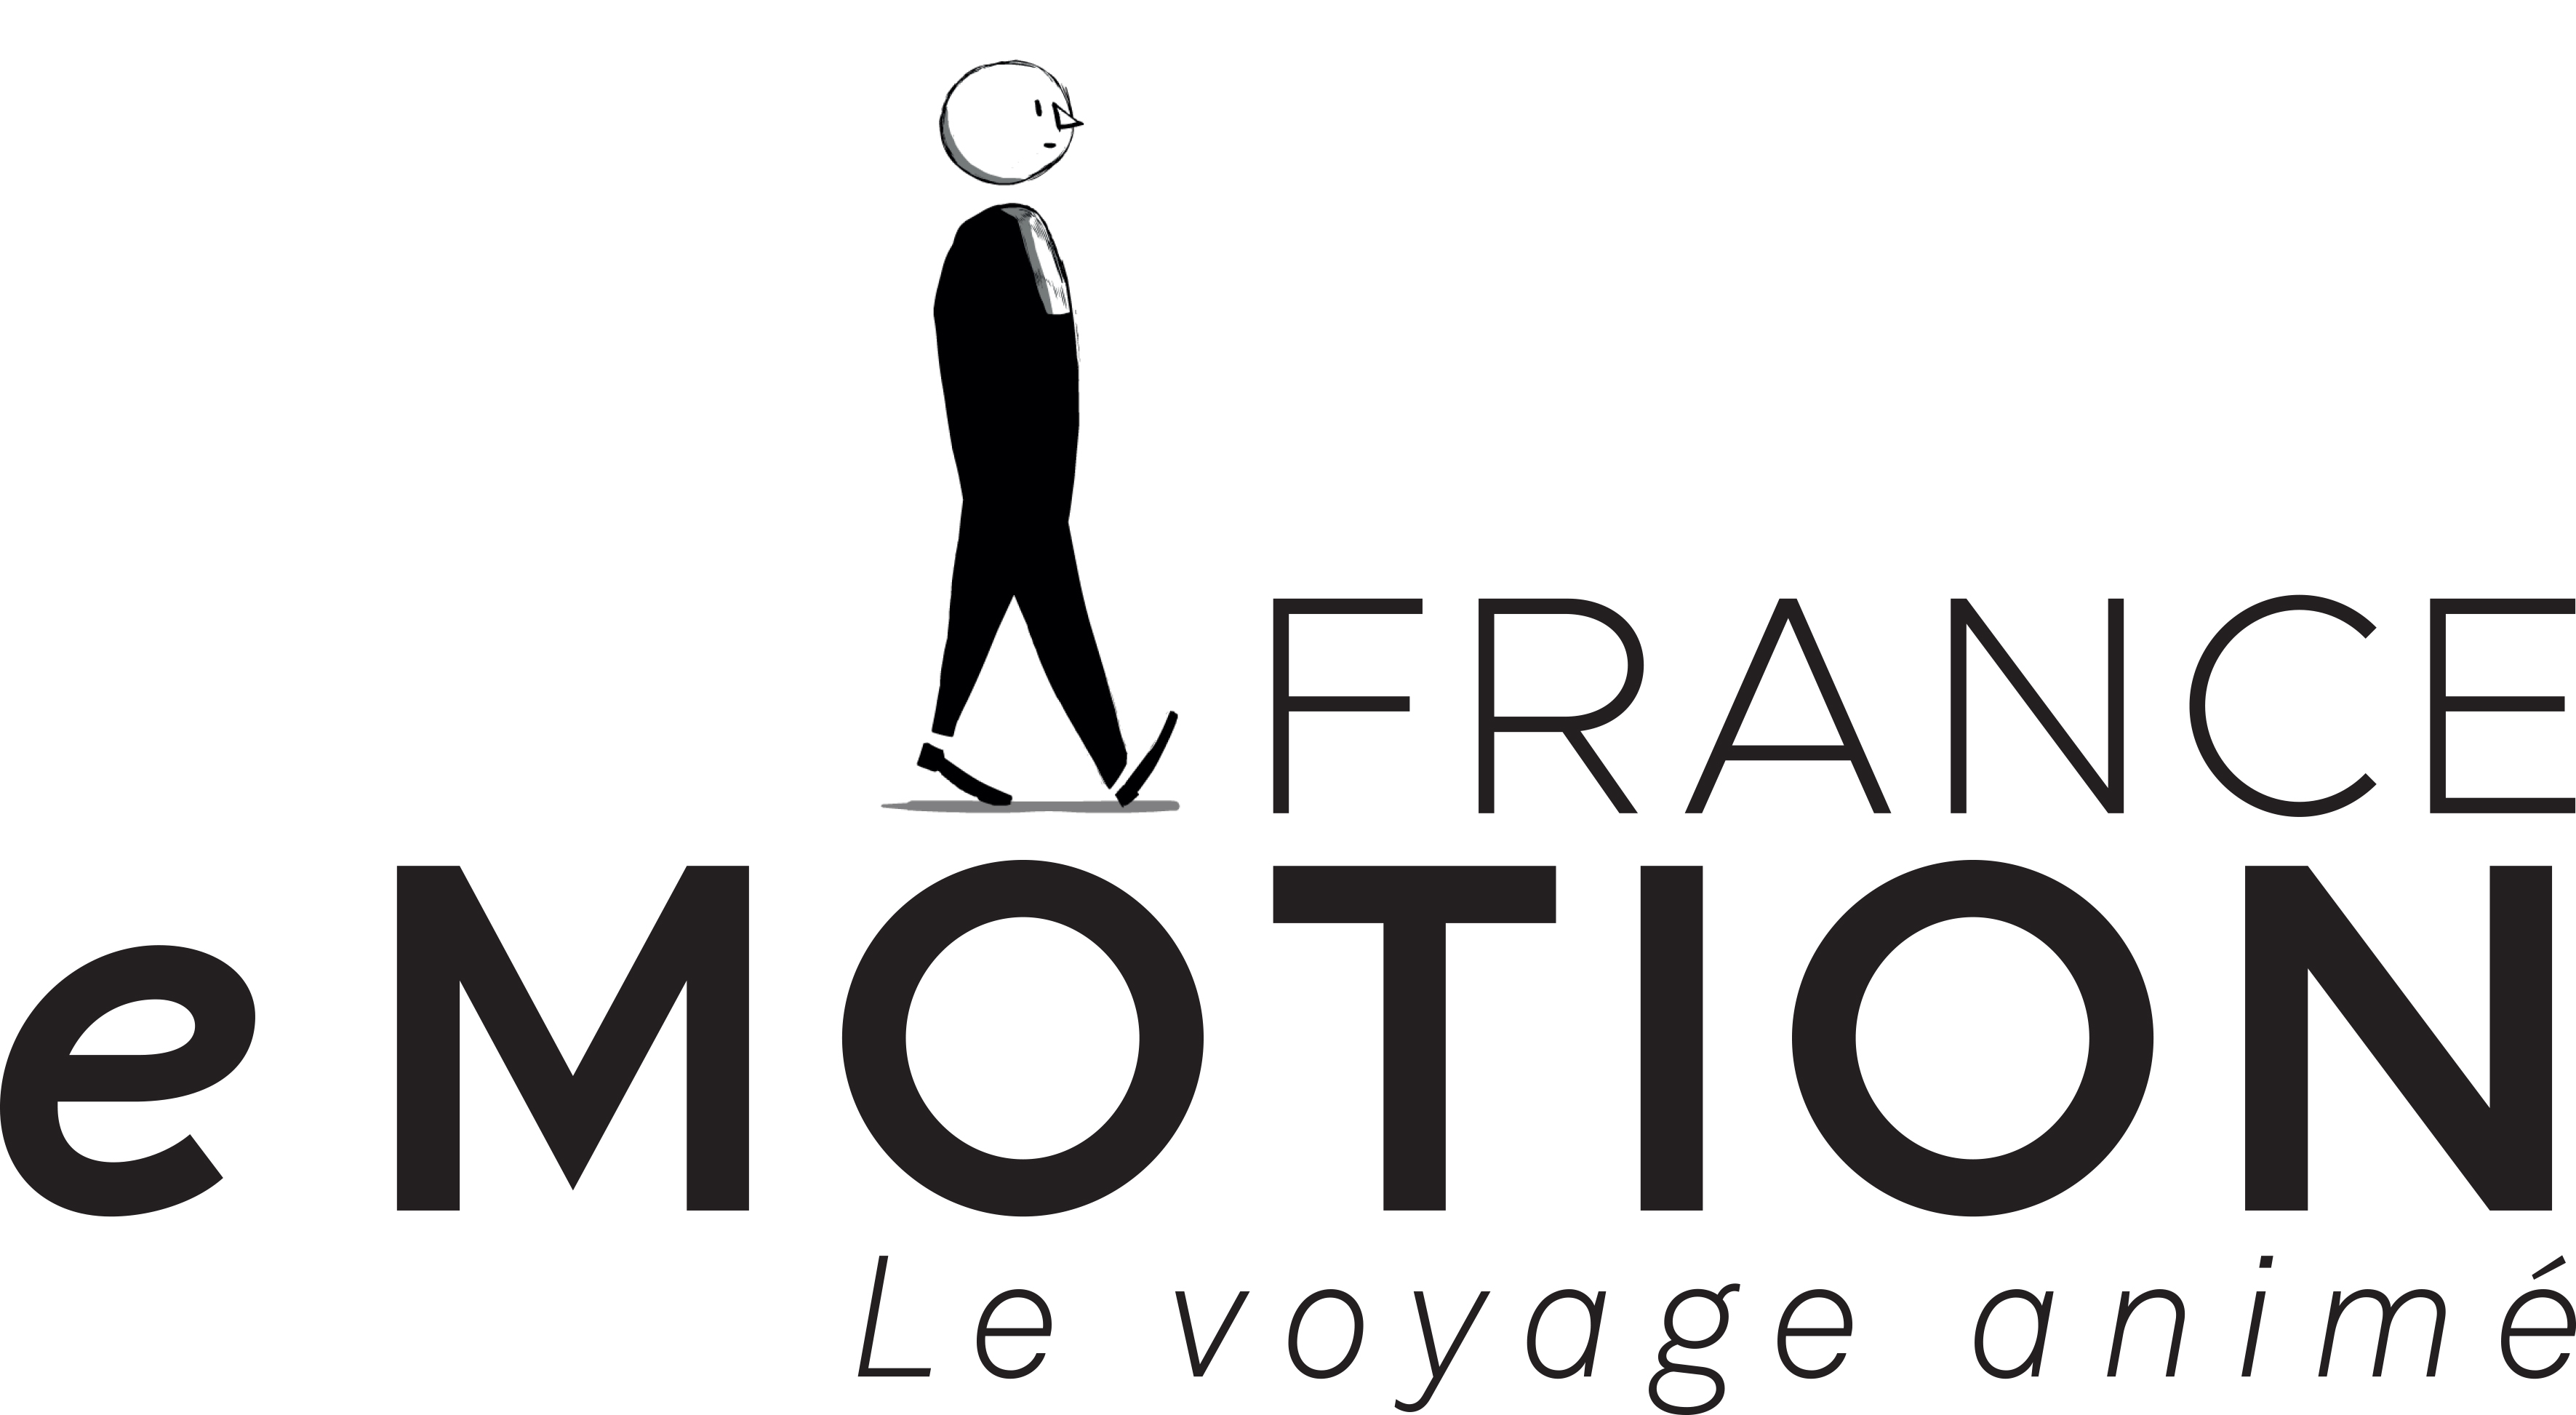 France eMotion project